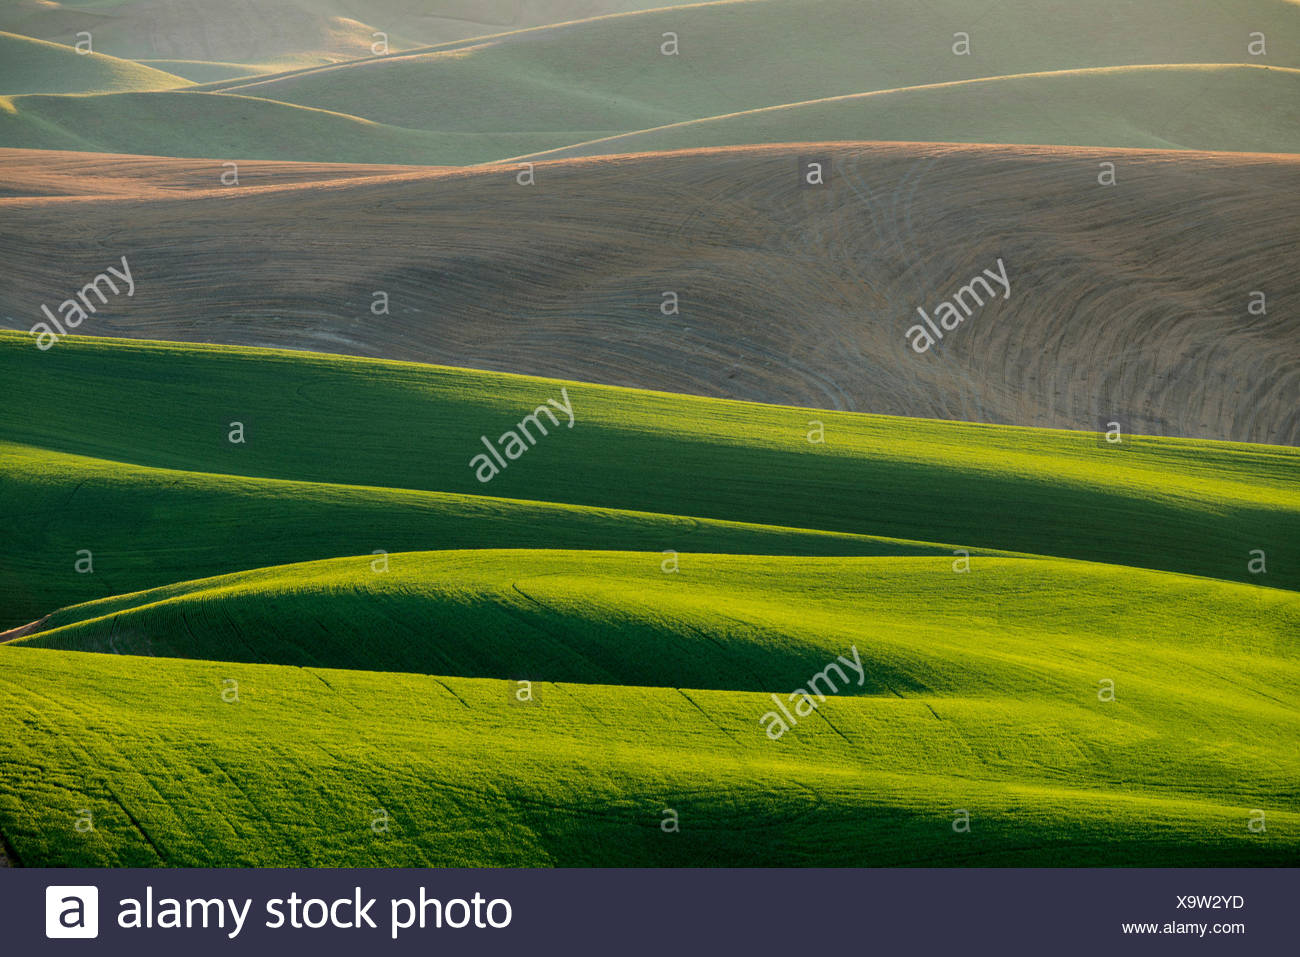 Loess soil stock photos loess soil stock images alamy for What is rich soil called